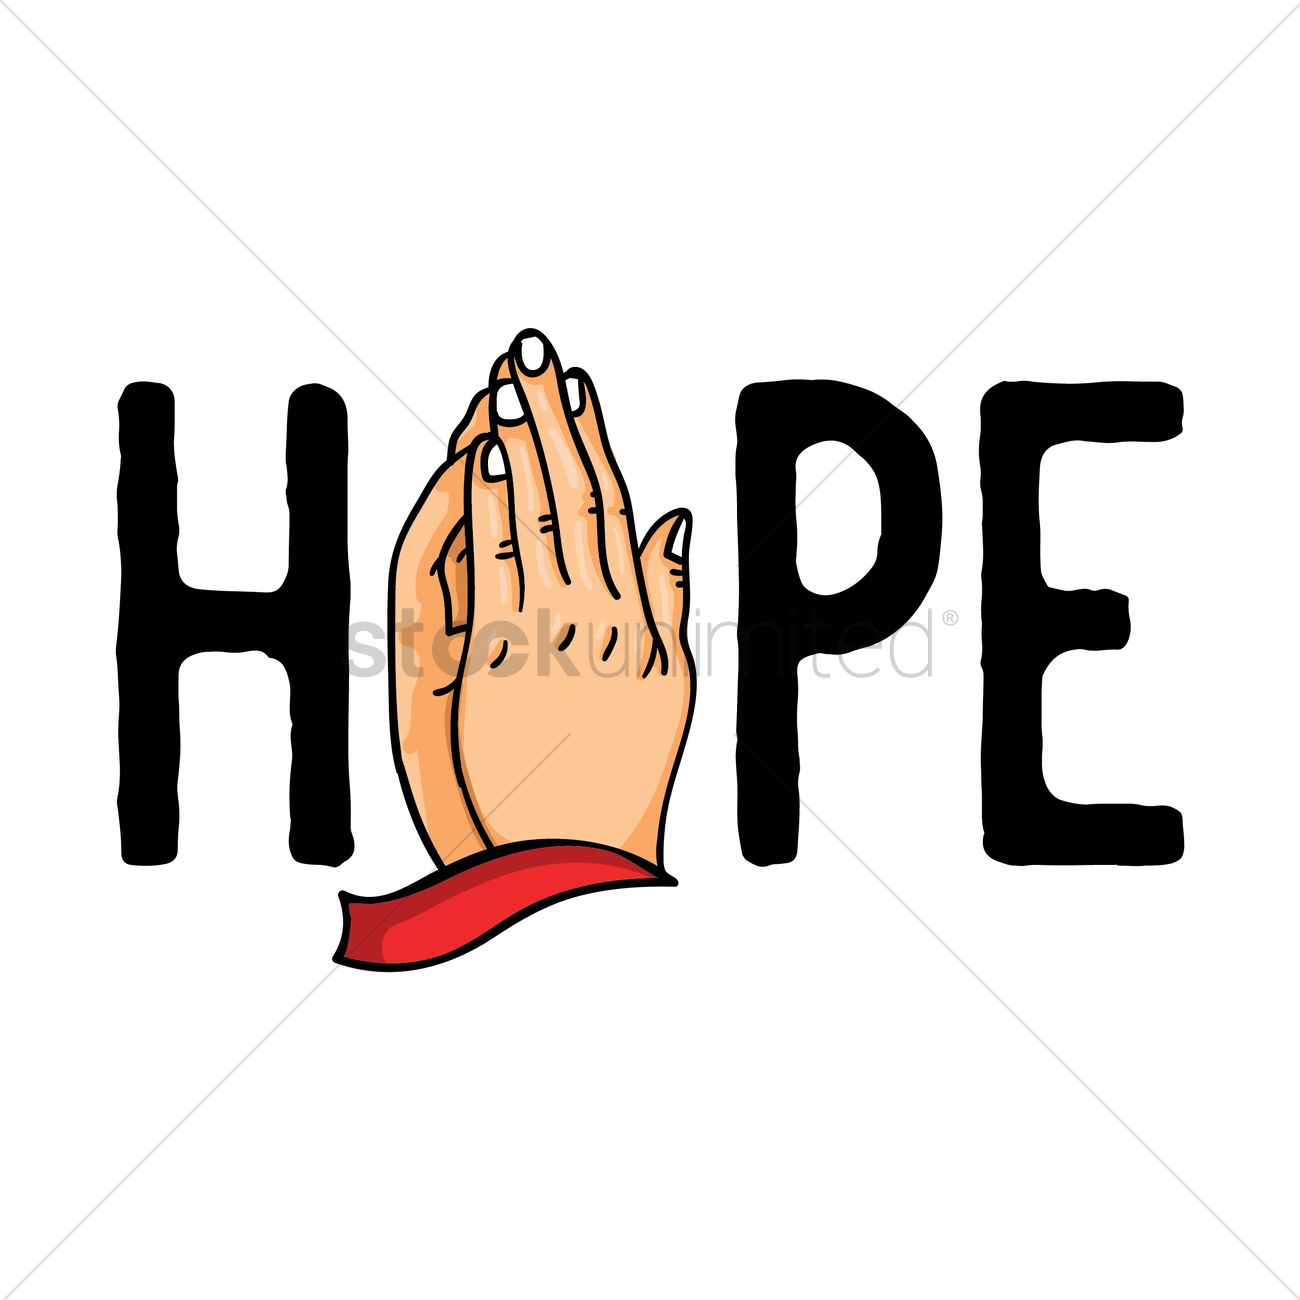 hope with hand praying vector image 1959031 stockunlimited rh stockunlimited com home clip art images free hope clip art images